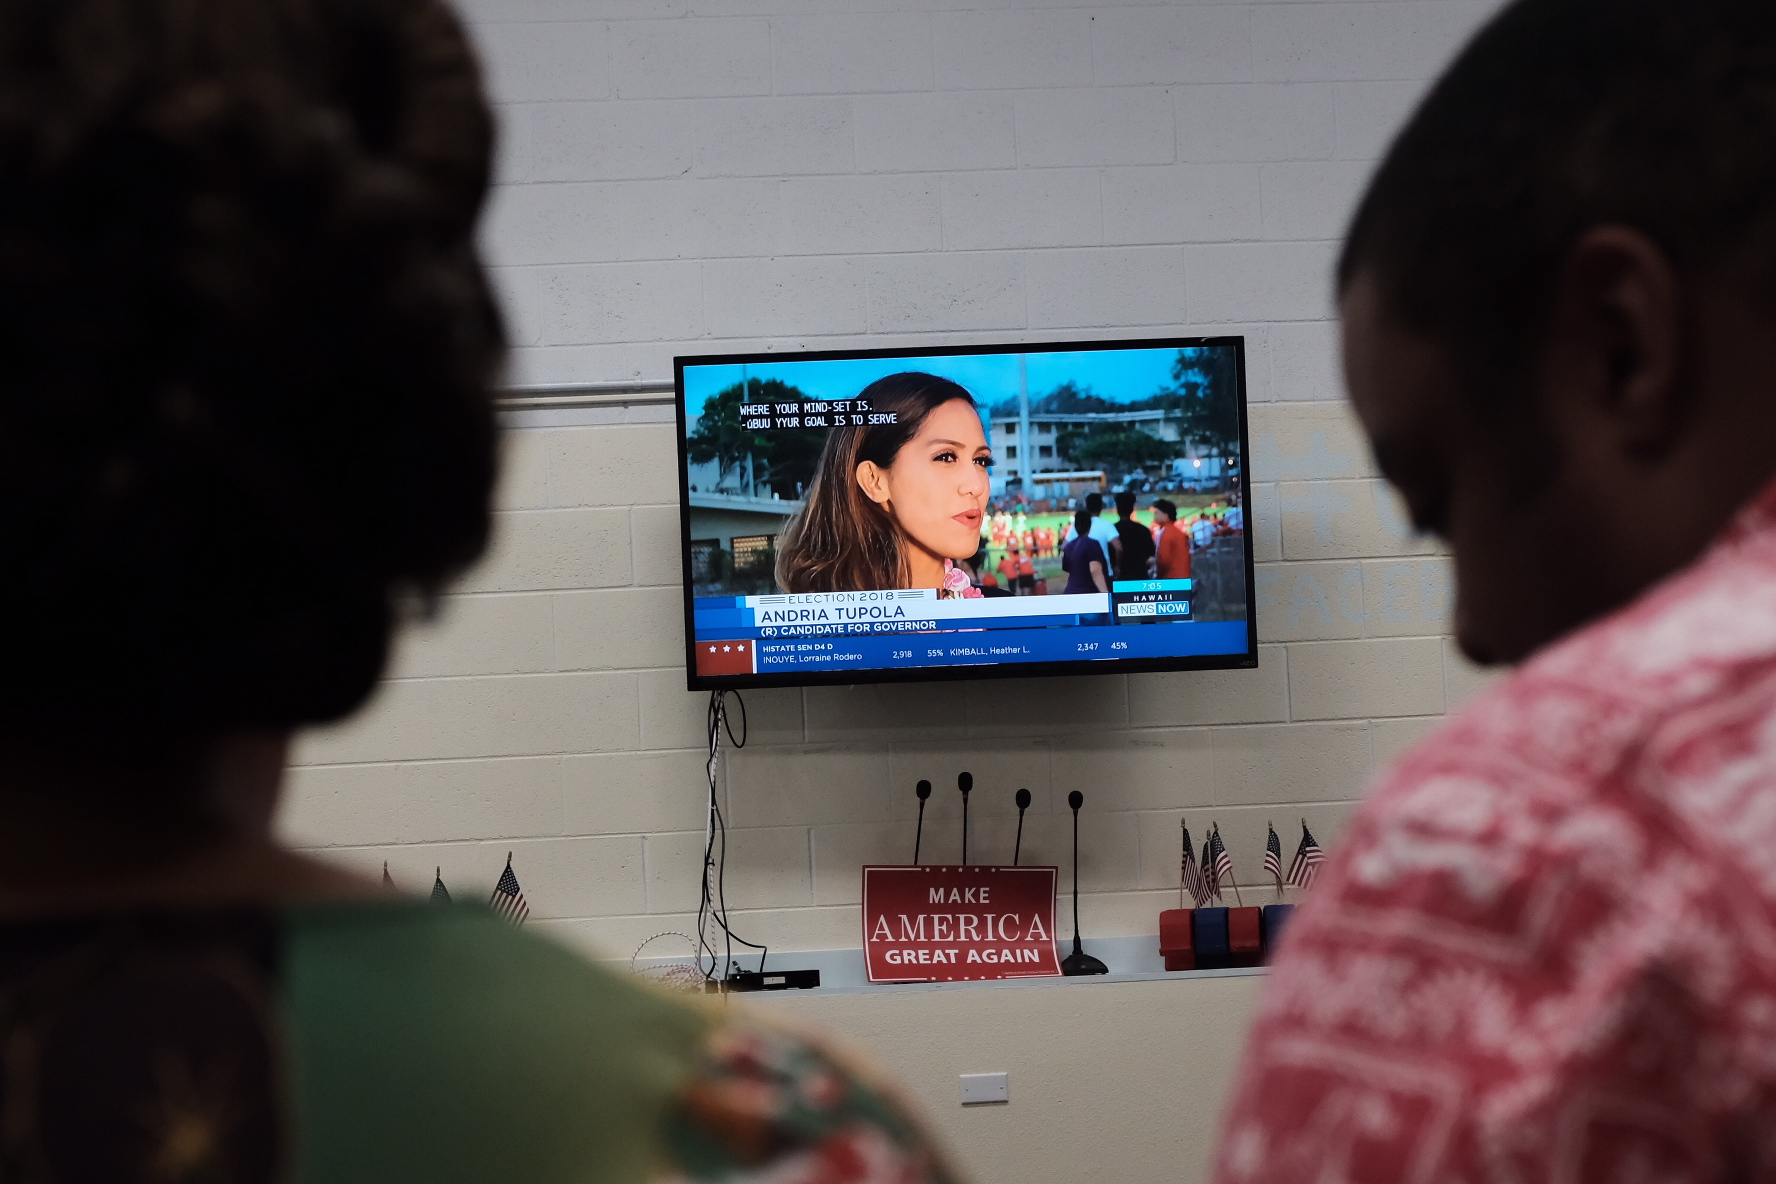 <p>State Rep. Andria Tupola spent Saturday night at a high school football game as she was winning the Republican gubernatorial nomination.Hawaii GOP chair Shirlene Ostrov, left and executive director Aaron Wilson watch from party headquarters as Tupola gives a TV interview.</p>